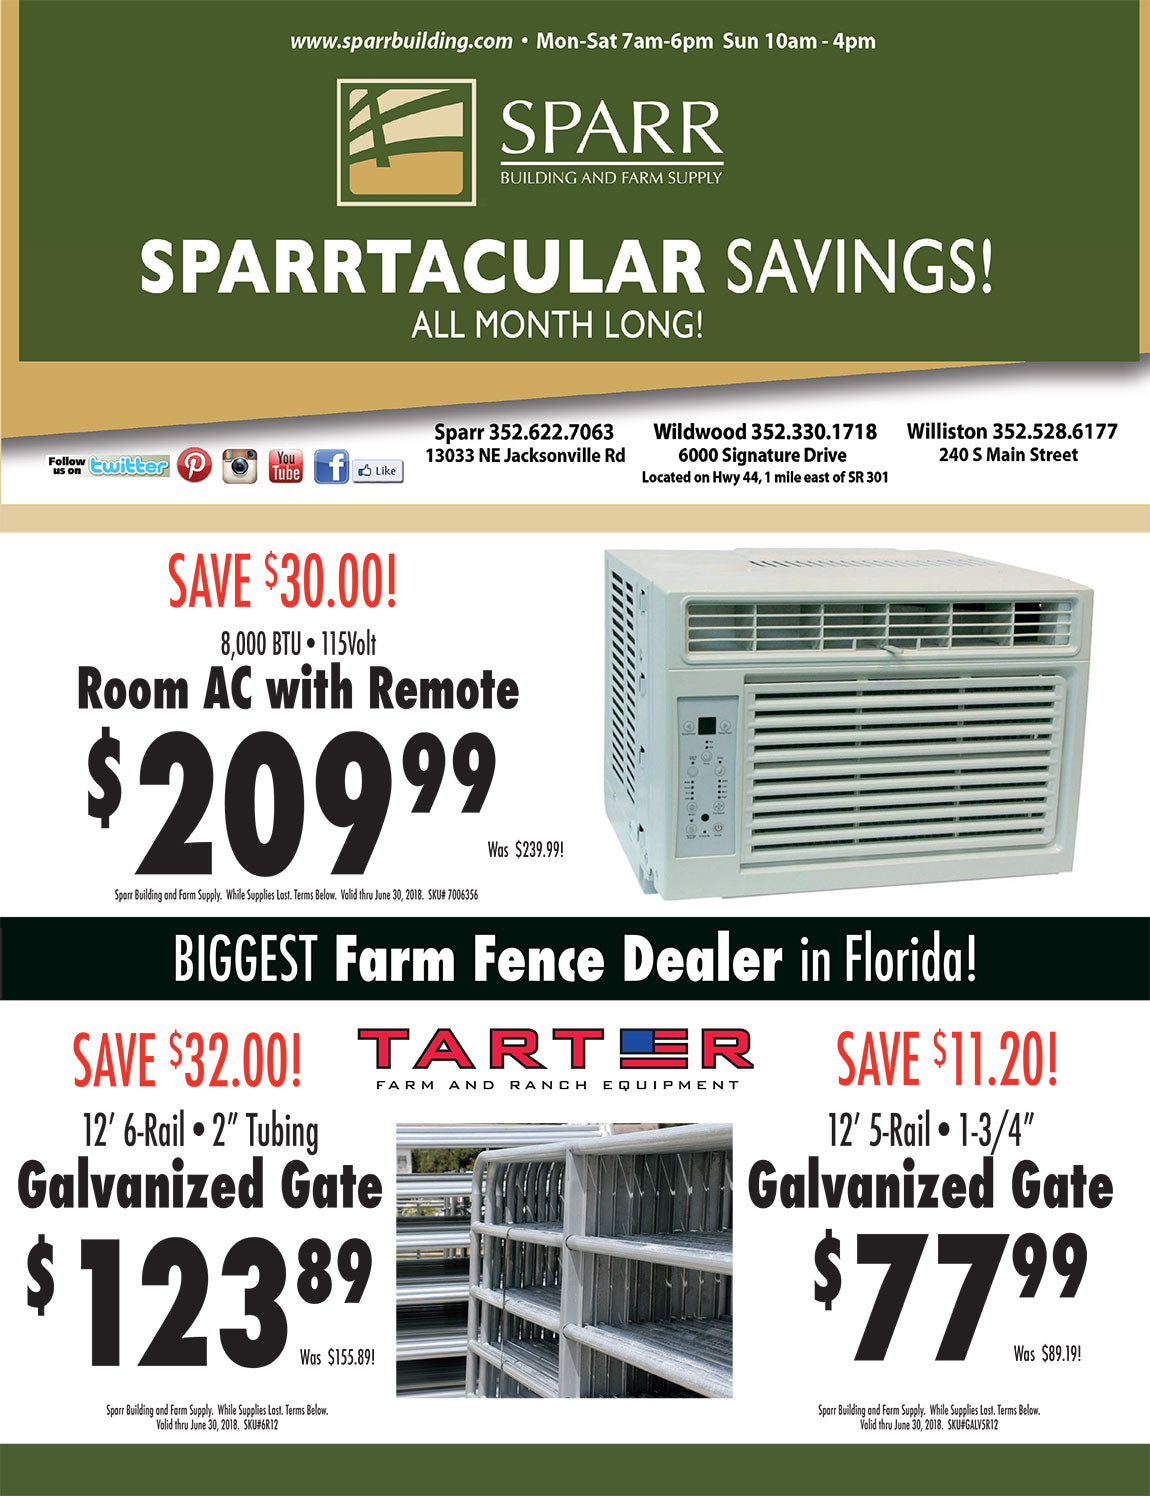 Stop By Your Local Sparr Building And Farm Supply Store Or Shop Online And  SAVE BIG On These Items During The Month Of JUNE 2018!